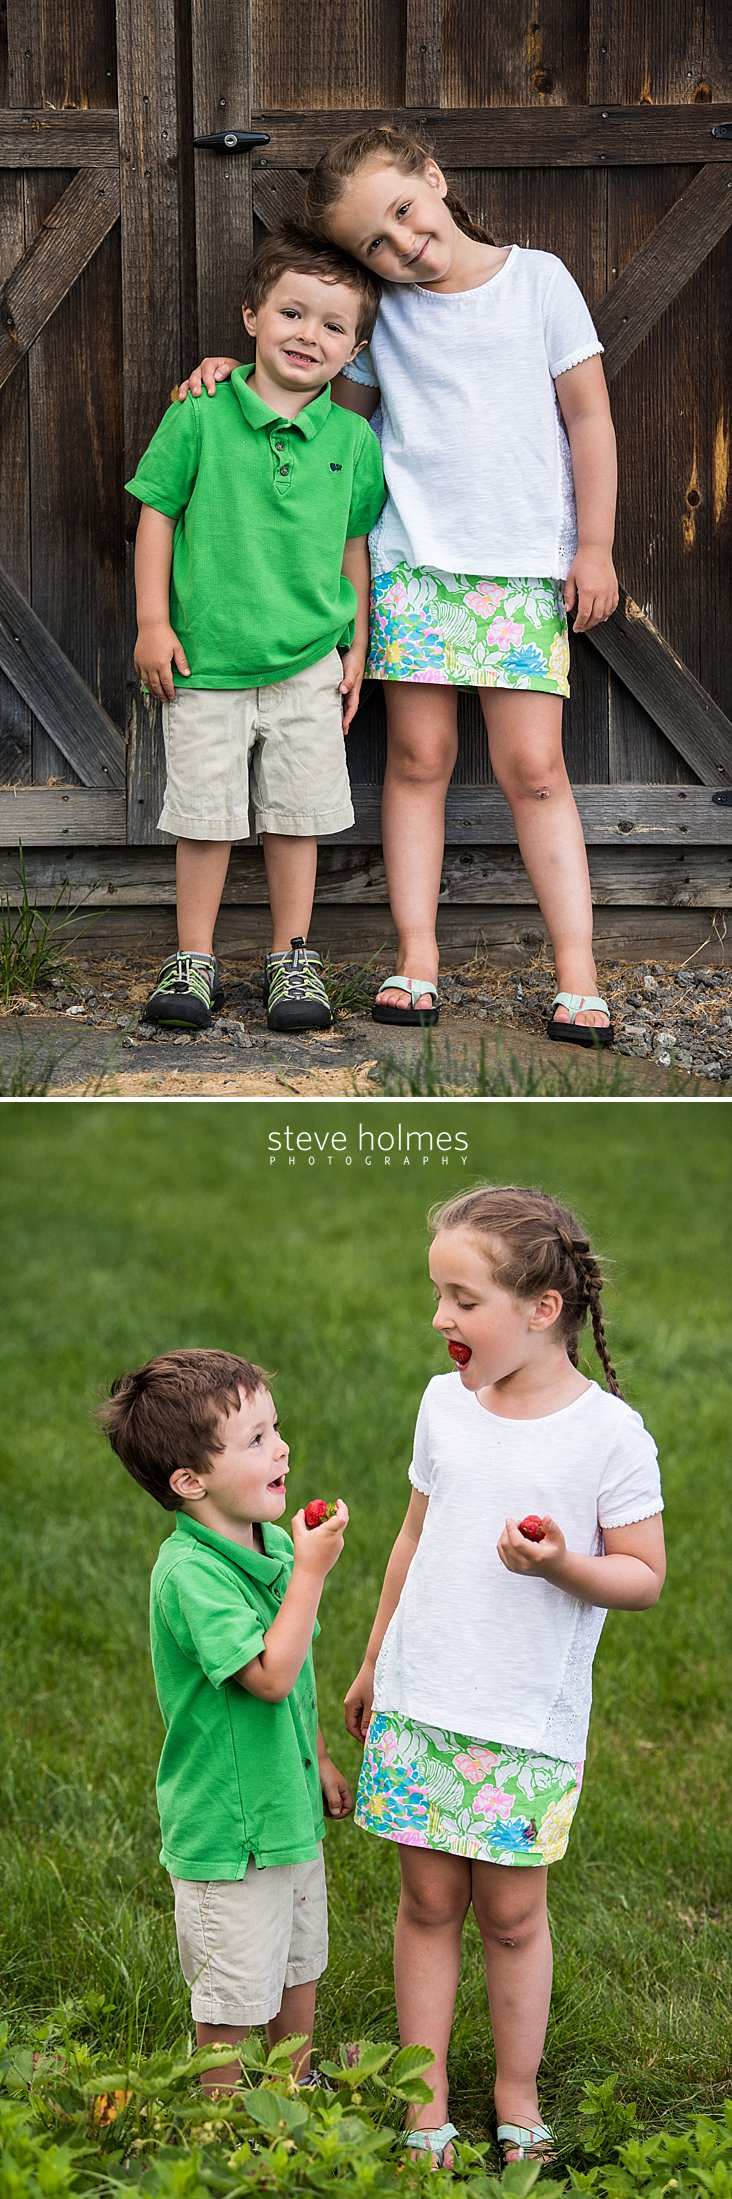 04_Two children pose for a photo against a barn door.jpg